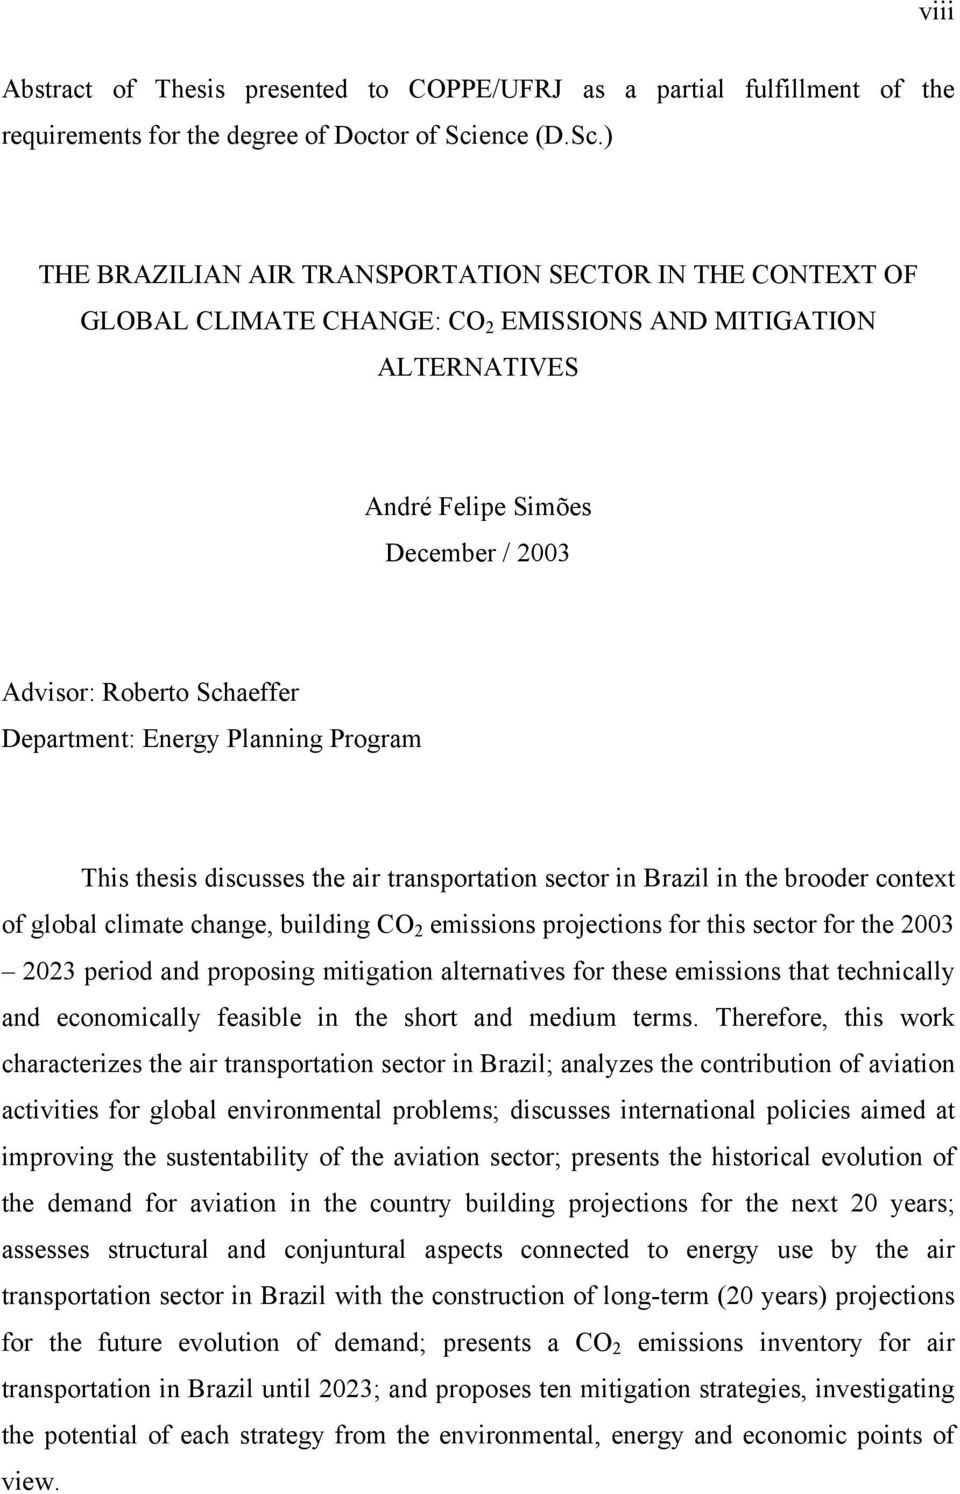 ) THE BRAZILIAN AIR TRANSPORTATION SECTOR IN THE CONTEXT OF GLOBAL CLIMATE CHANGE: CO 2 EMISSIONS AND MITIGATION ALTERNATIVES André Felipe Simões December / 2003 Advisor: Roberto Schaeffer